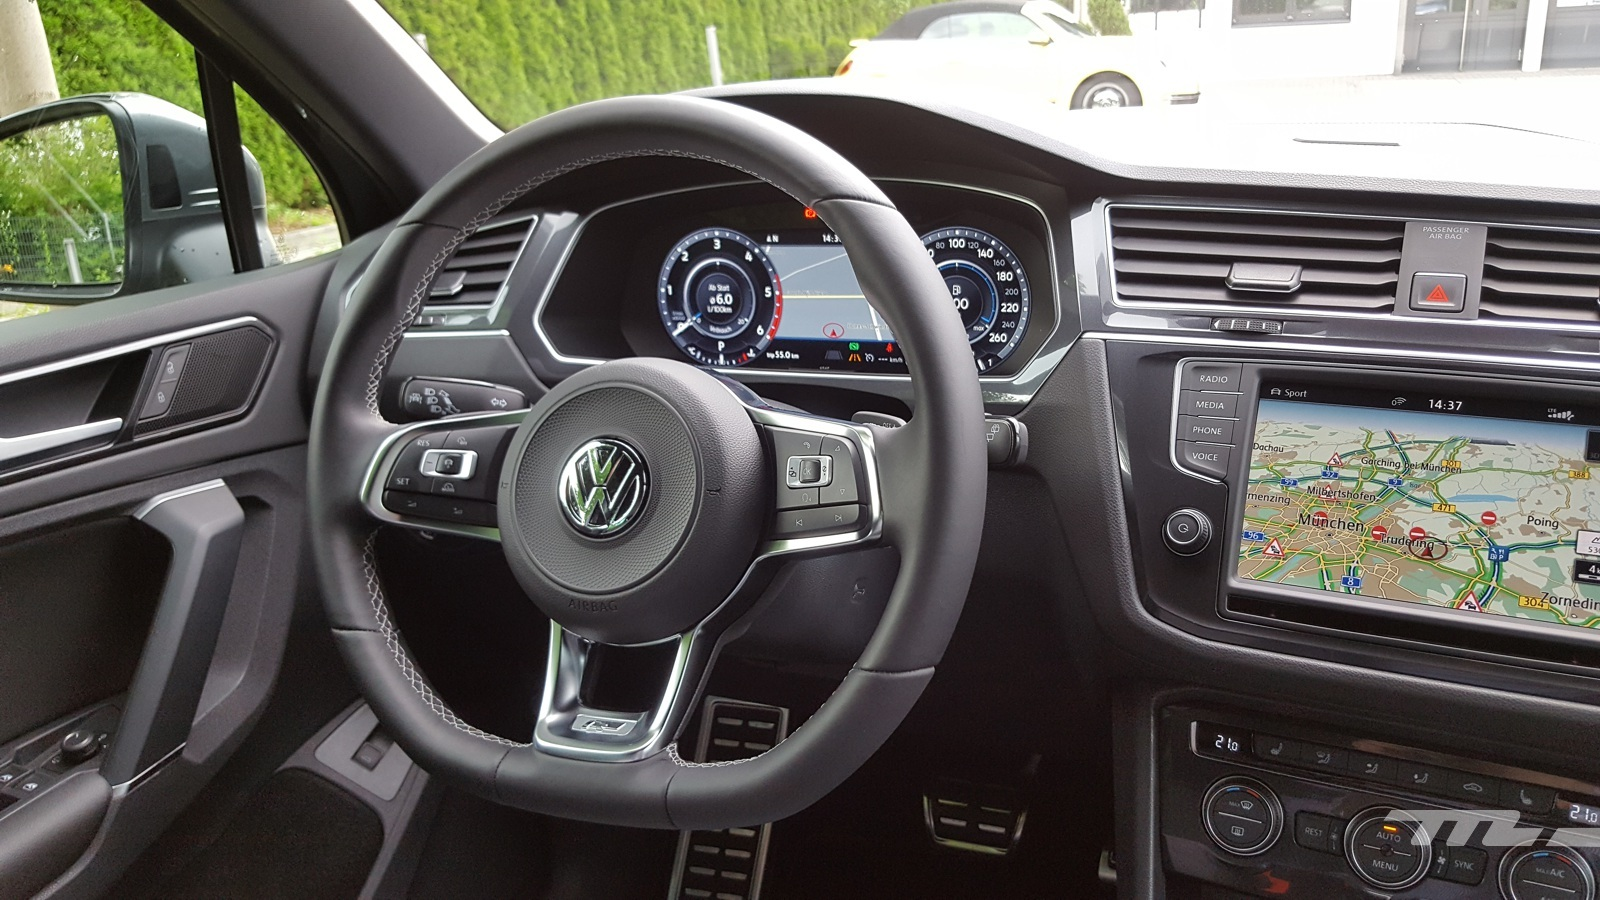 volkswagen tiguan 2016 2 0 tdi biturbo 240 cv 4motion r line 22 22. Black Bedroom Furniture Sets. Home Design Ideas